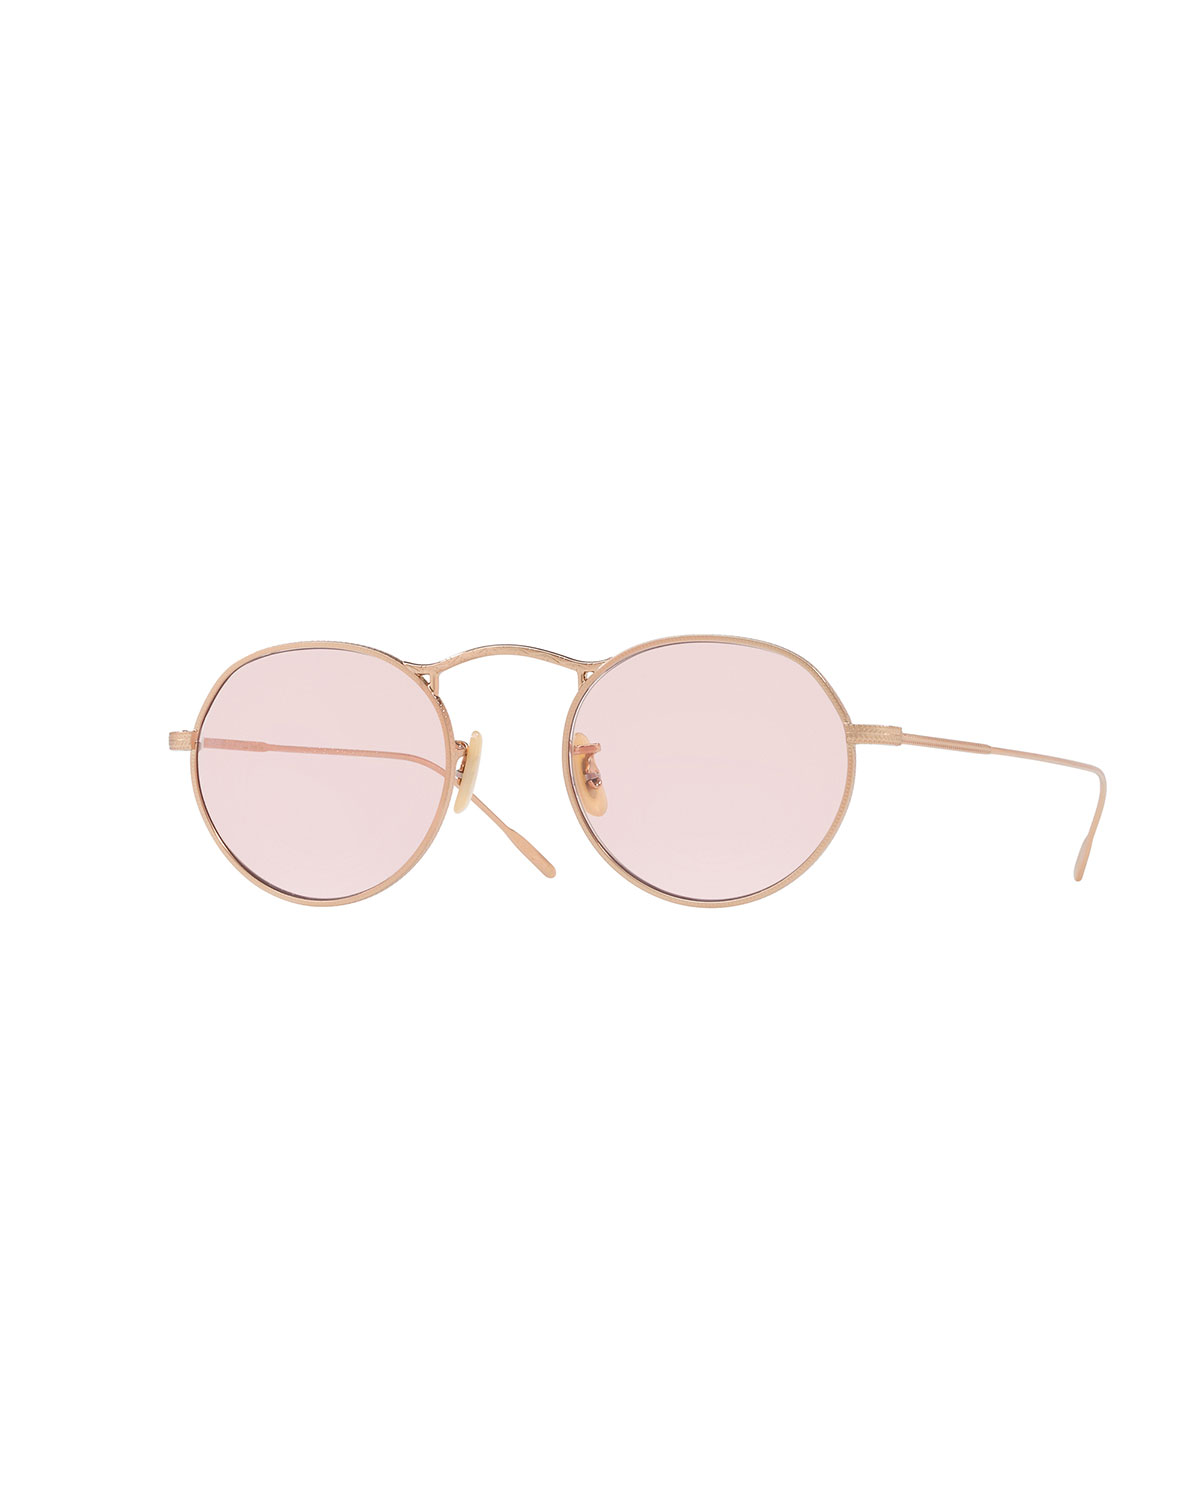 431683396d5 Oliver Peoples M-4 30th Round Metal Sunglasses